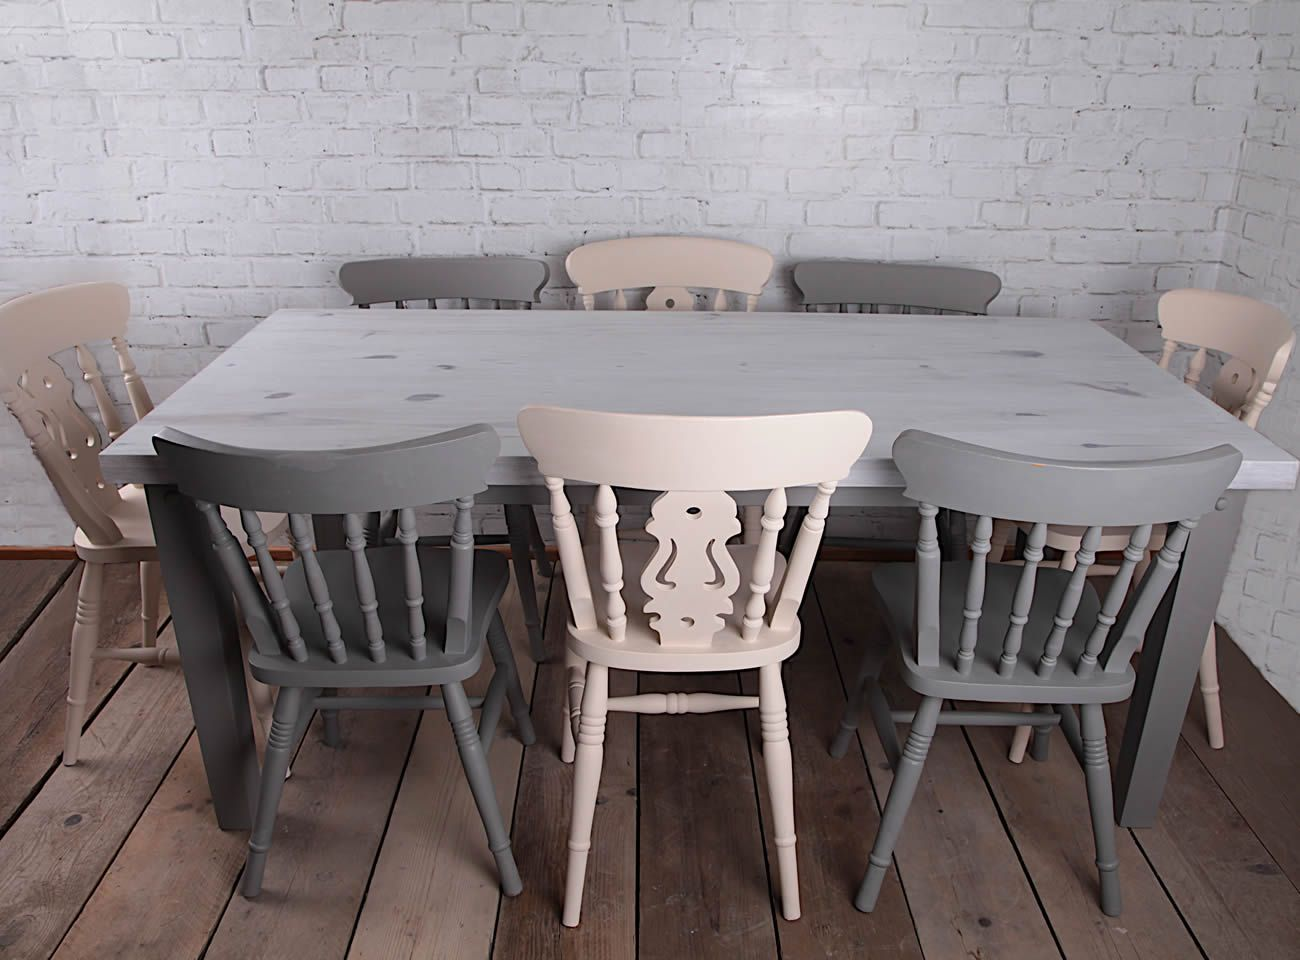 Dining table with chairs - Best 25 Vintage Dining Tables Ideas On Pinterest Kitchen Dining Tables Dining Decor And Rustic Kitchen Tables